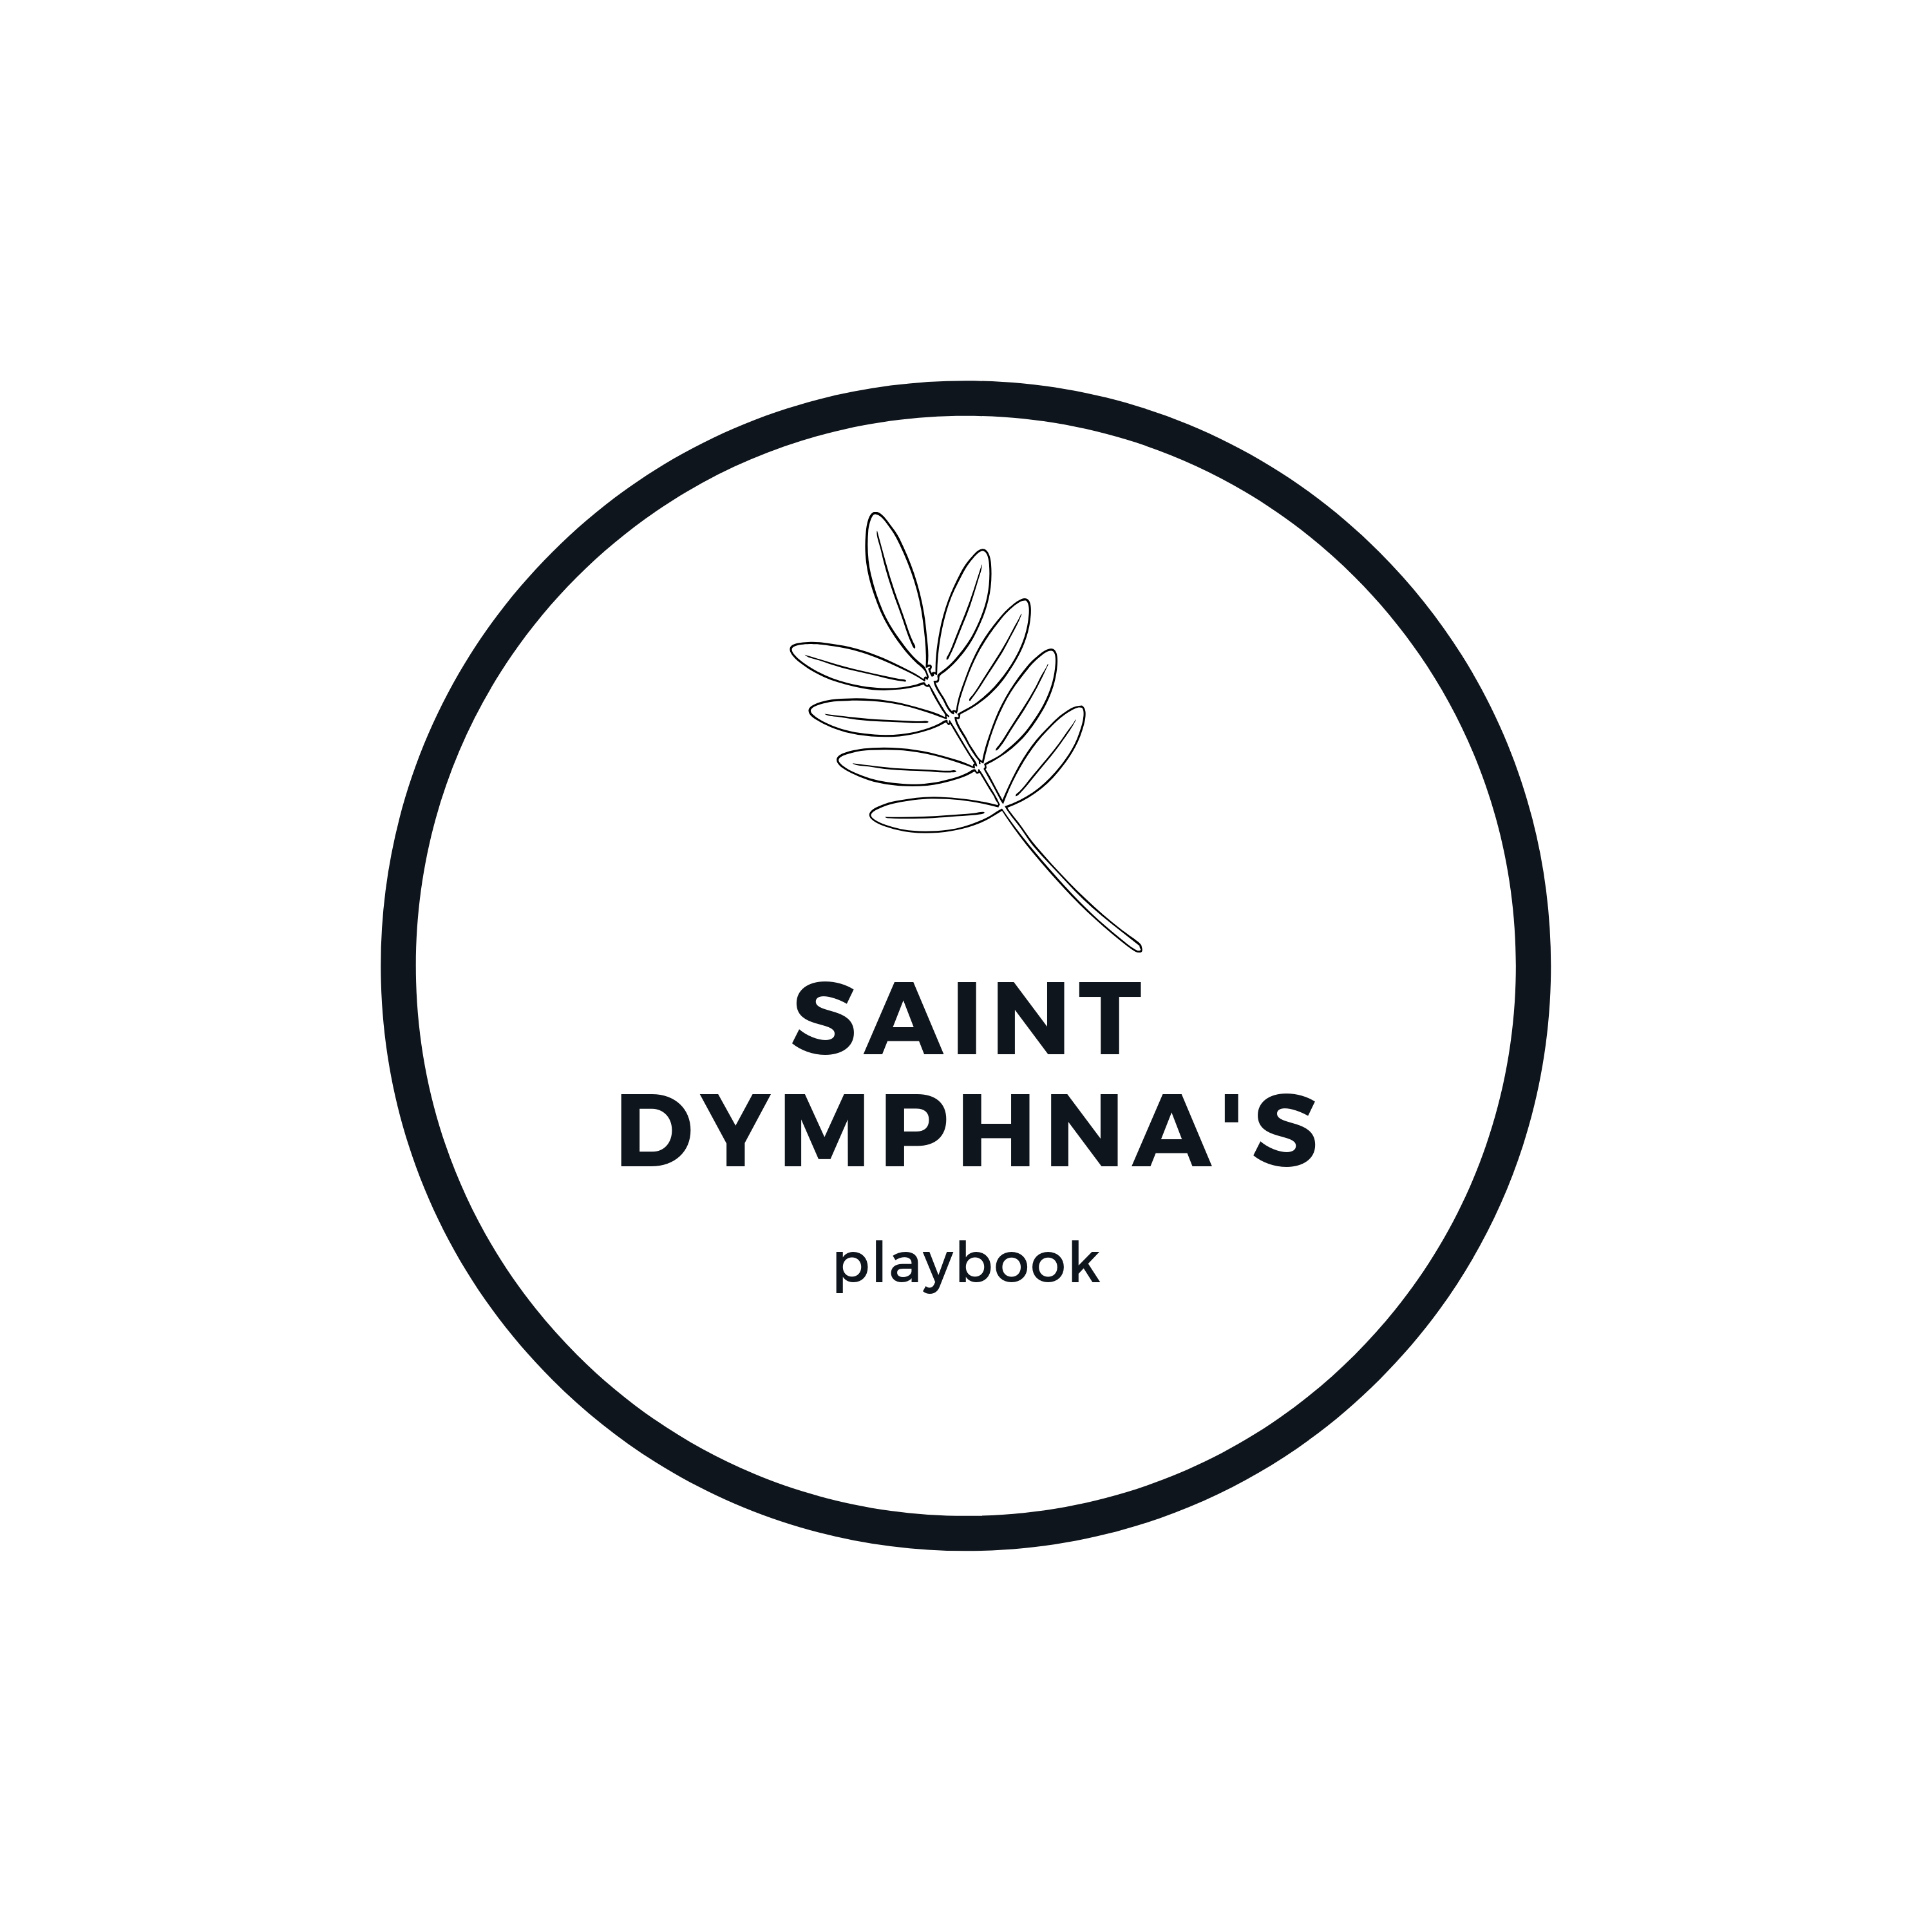 saint dymphna's playbook